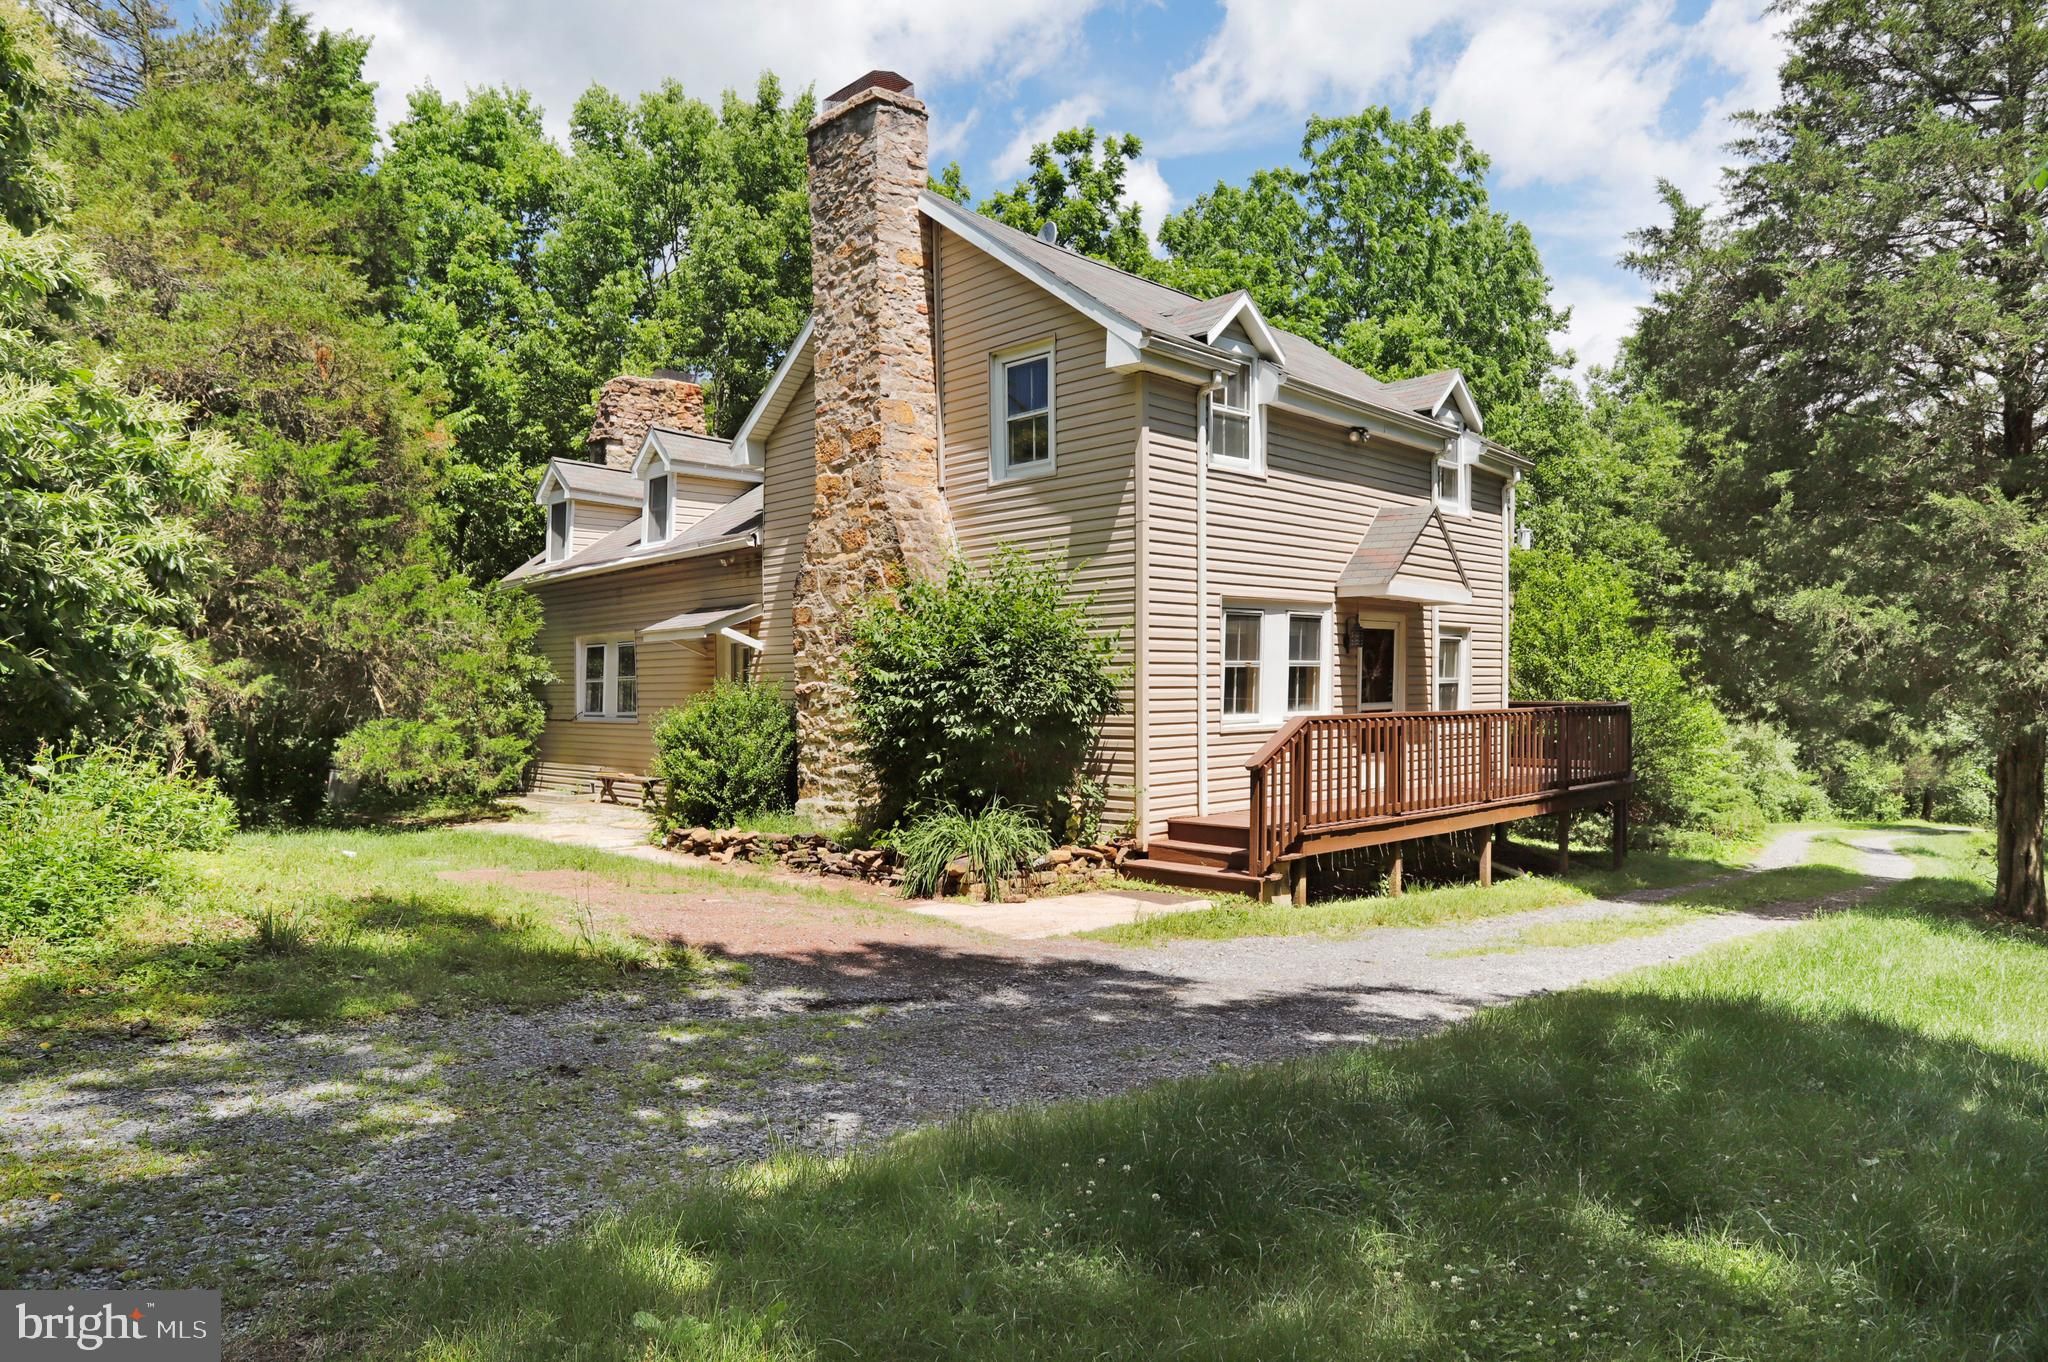 13286 MUMMERT ROAD, CLEAR SPRING, MD 21722